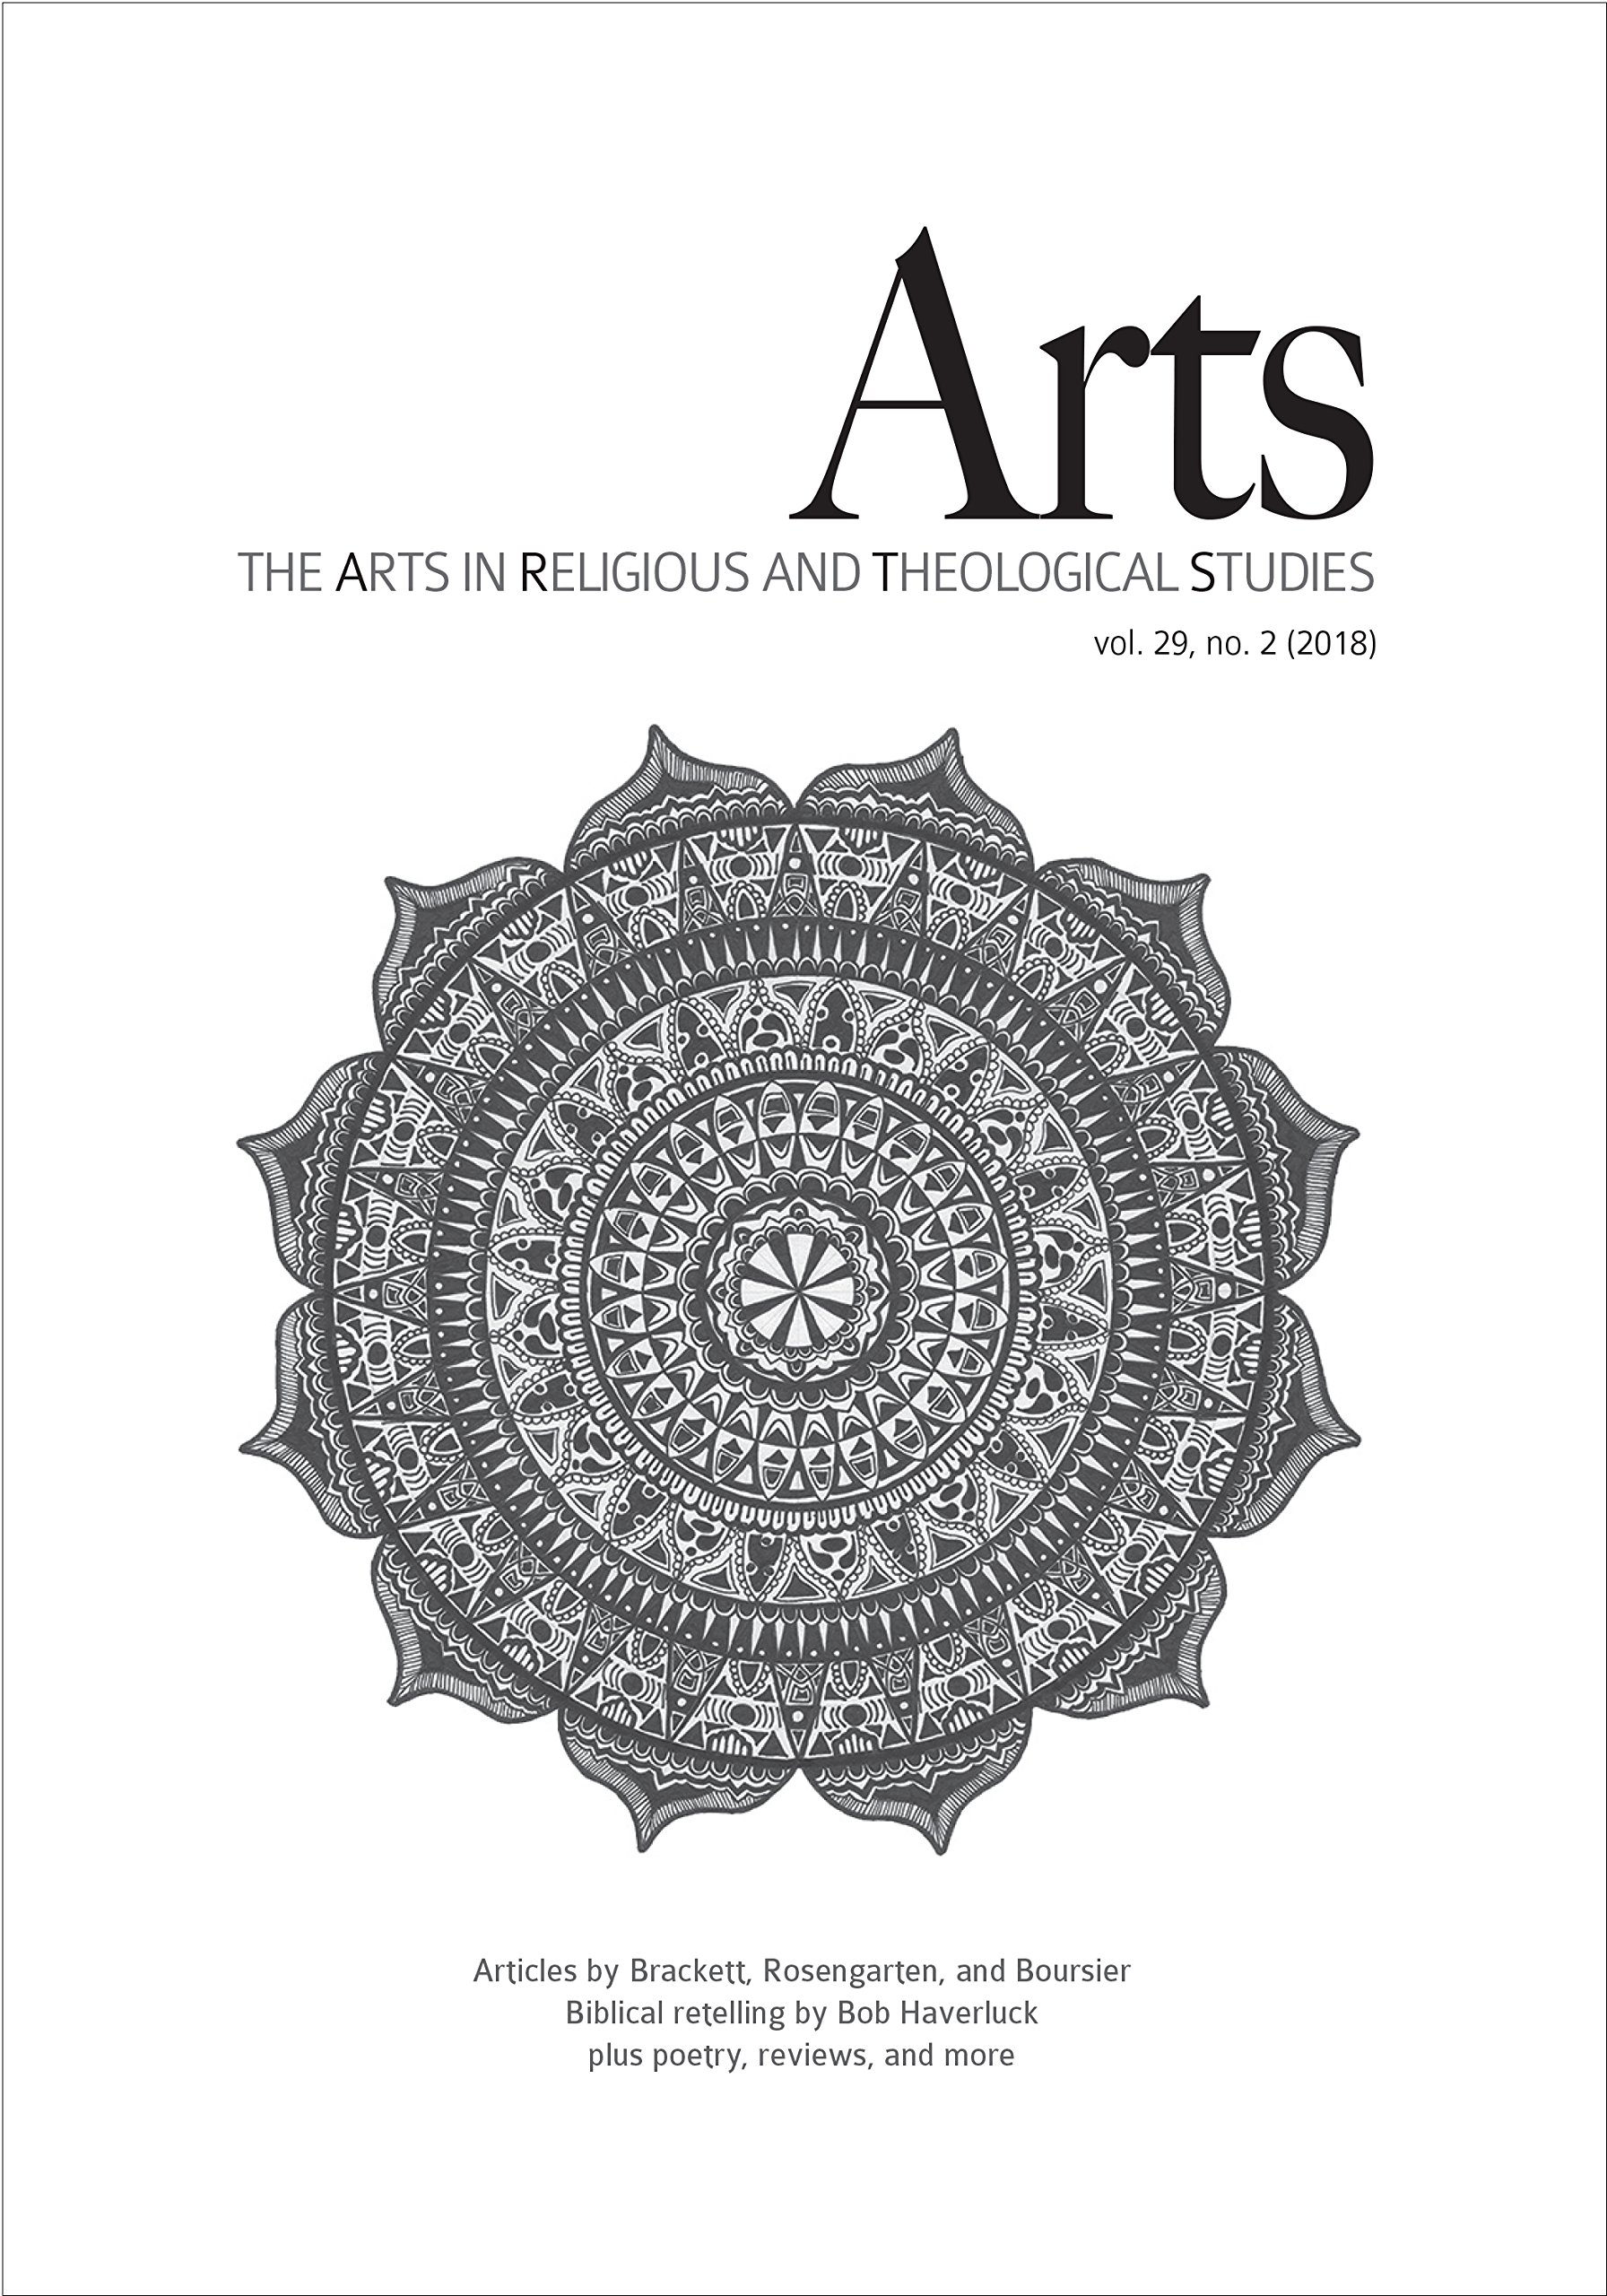 Download ARTS: The Arts in Religious and Theological Studies (vol. 29, no. 2) pdf